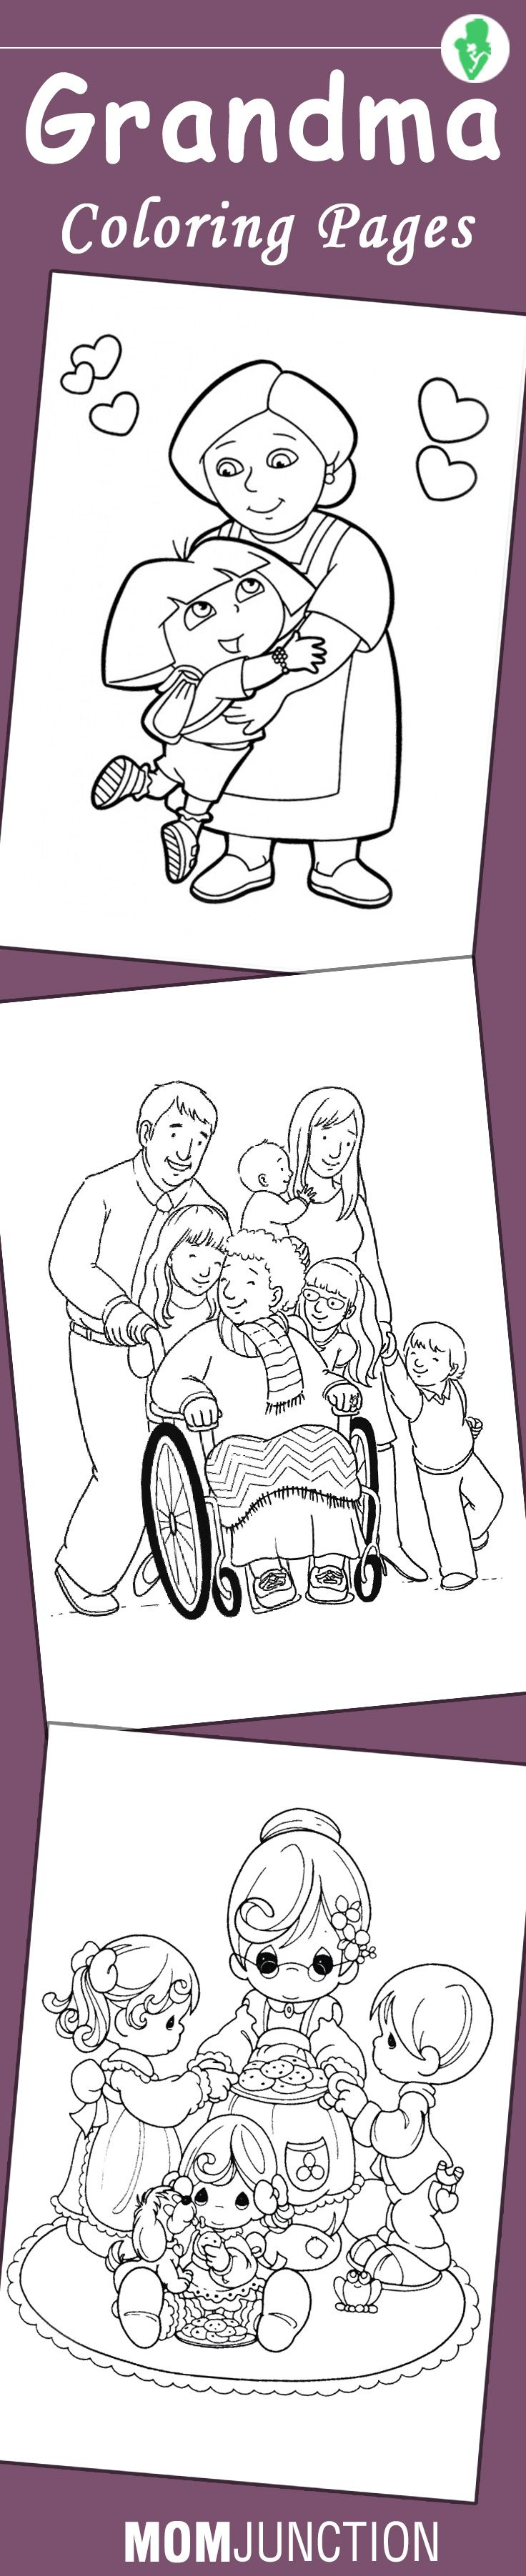 10 Best Grandma Coloring Pages For Your Little Ones